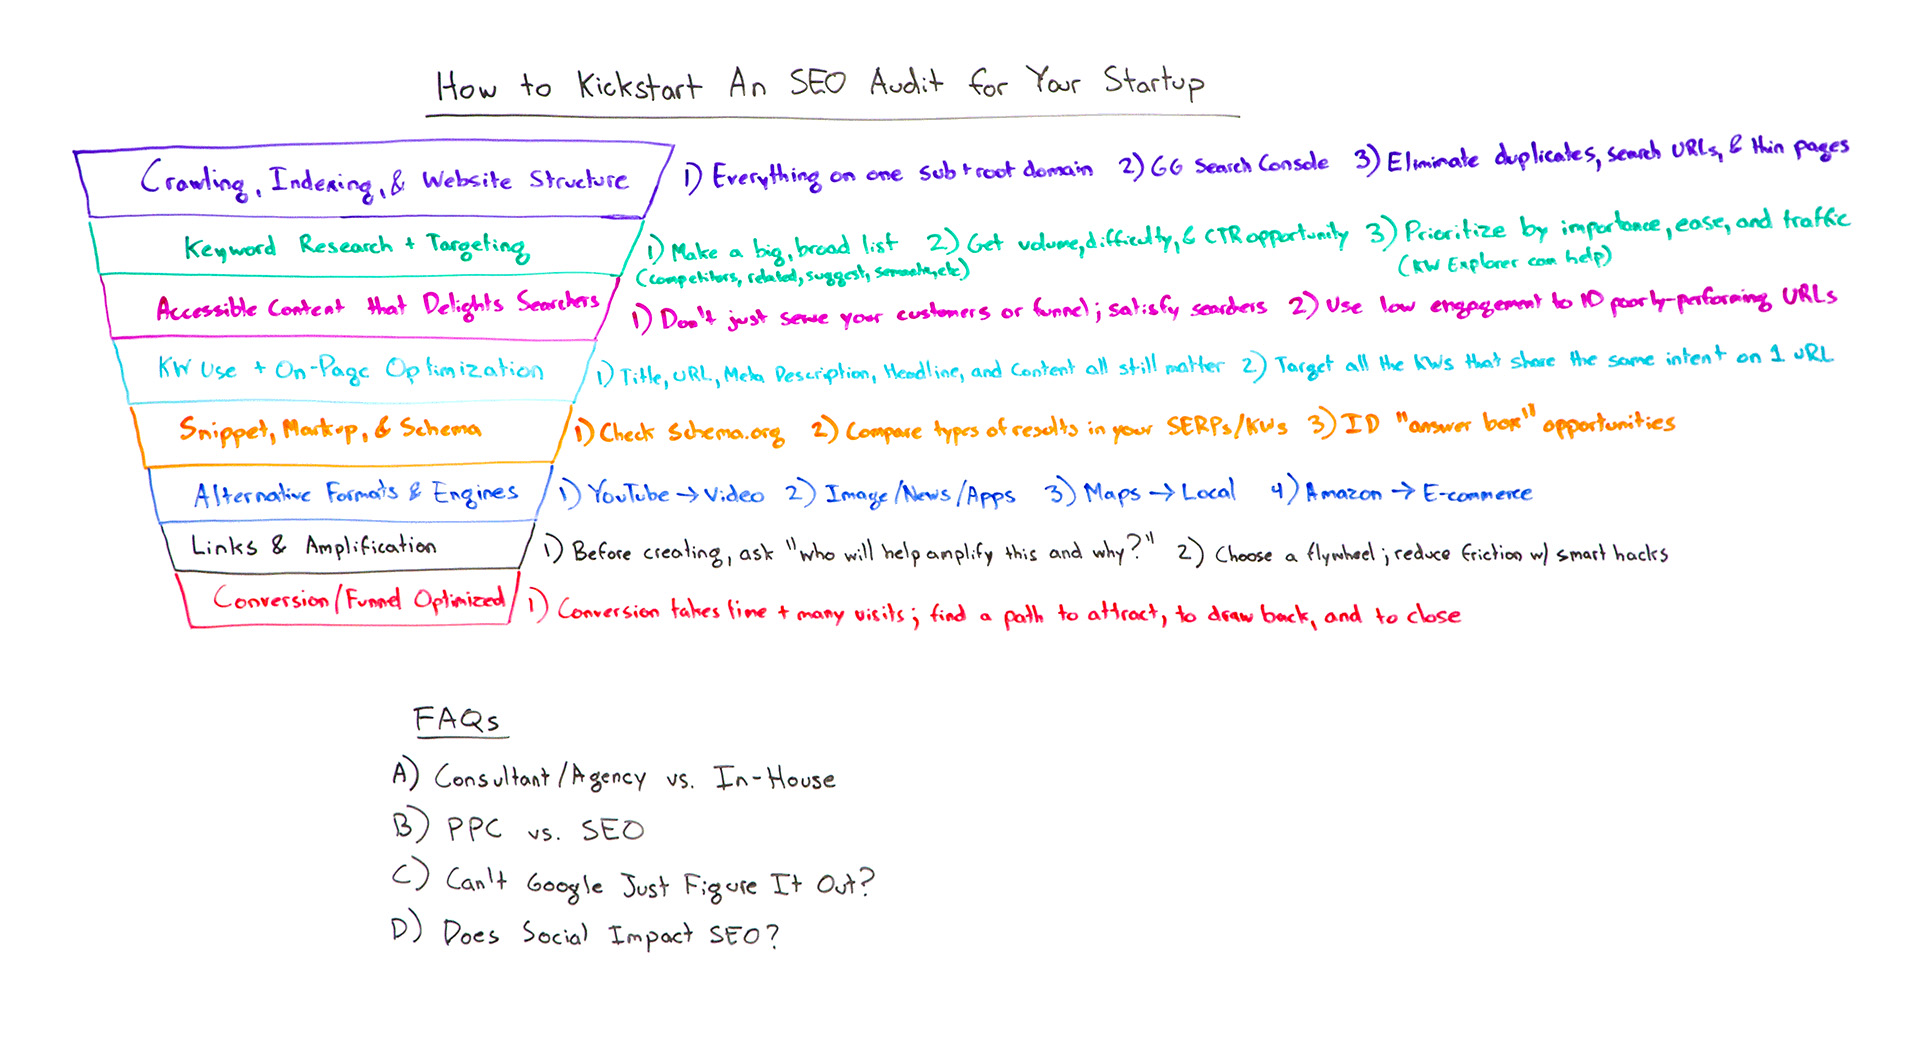 How to Kickstart an SEO Audit for Your Startup - Whiteboard Friday - Moz